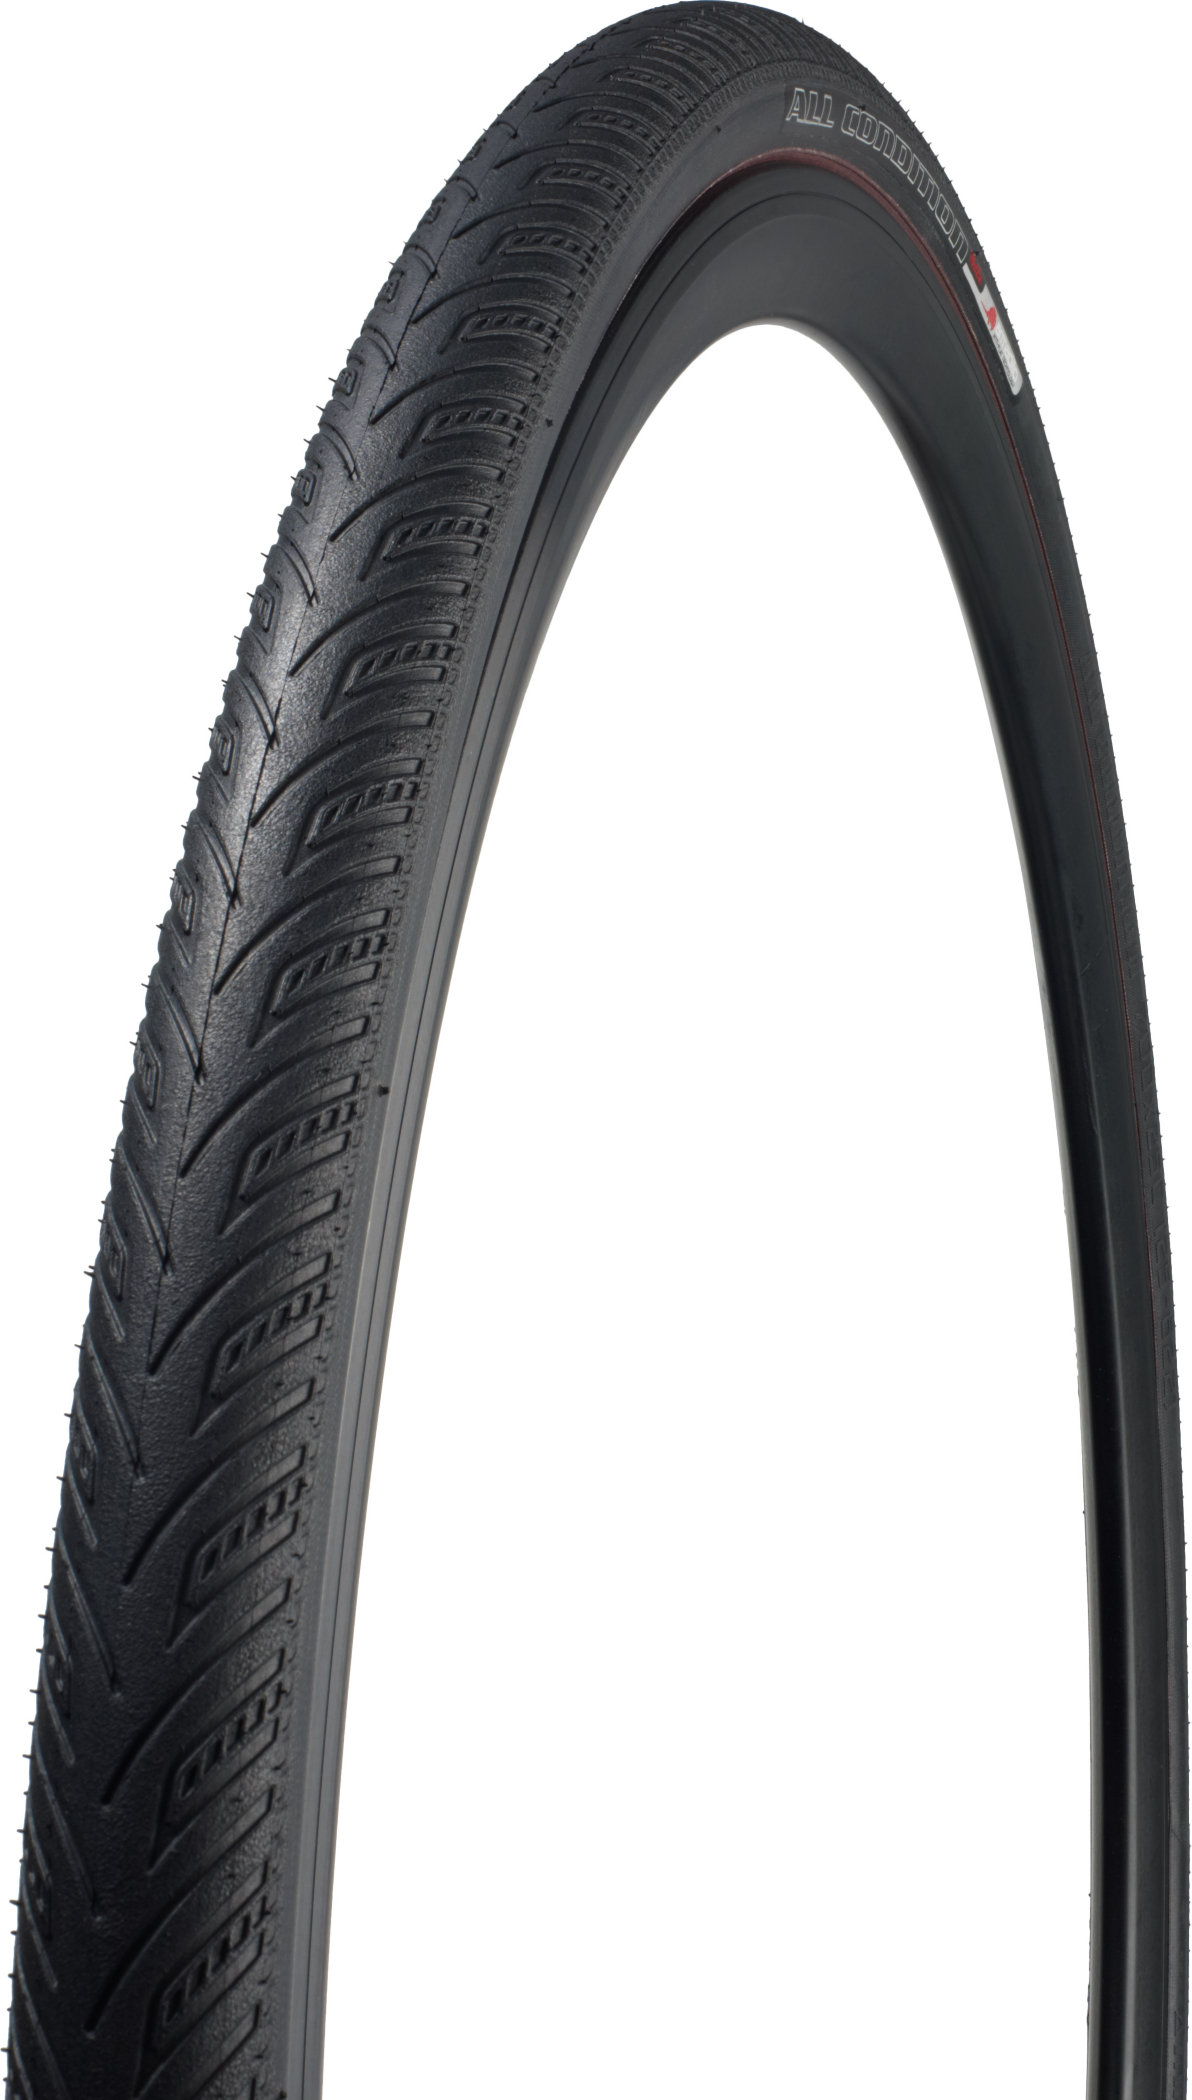 SPECIALIZED ALL CONDITION ARM TIRE 700X23C - Alpha Bikes